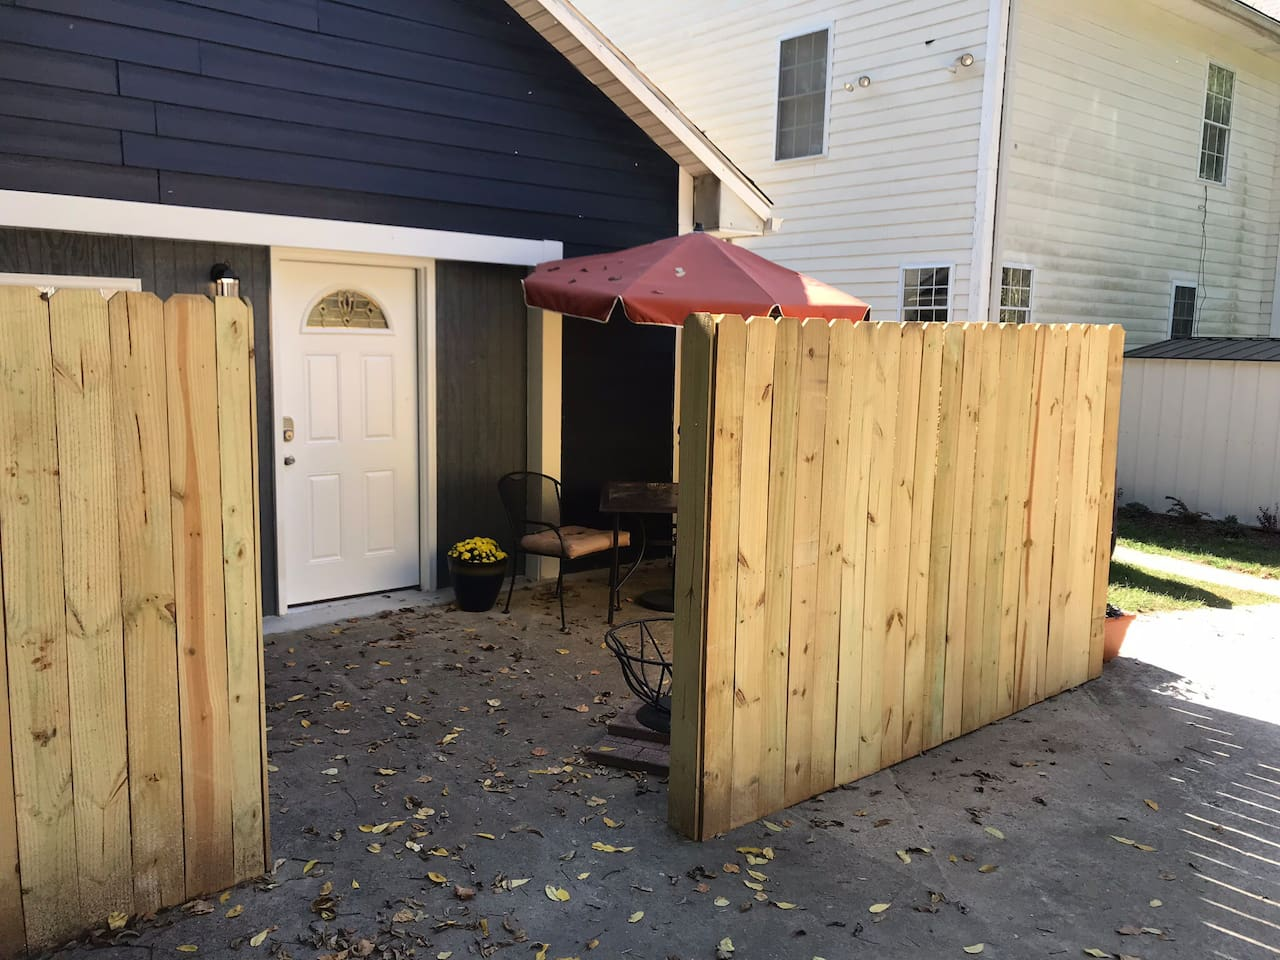 Drive way connected to host 's home